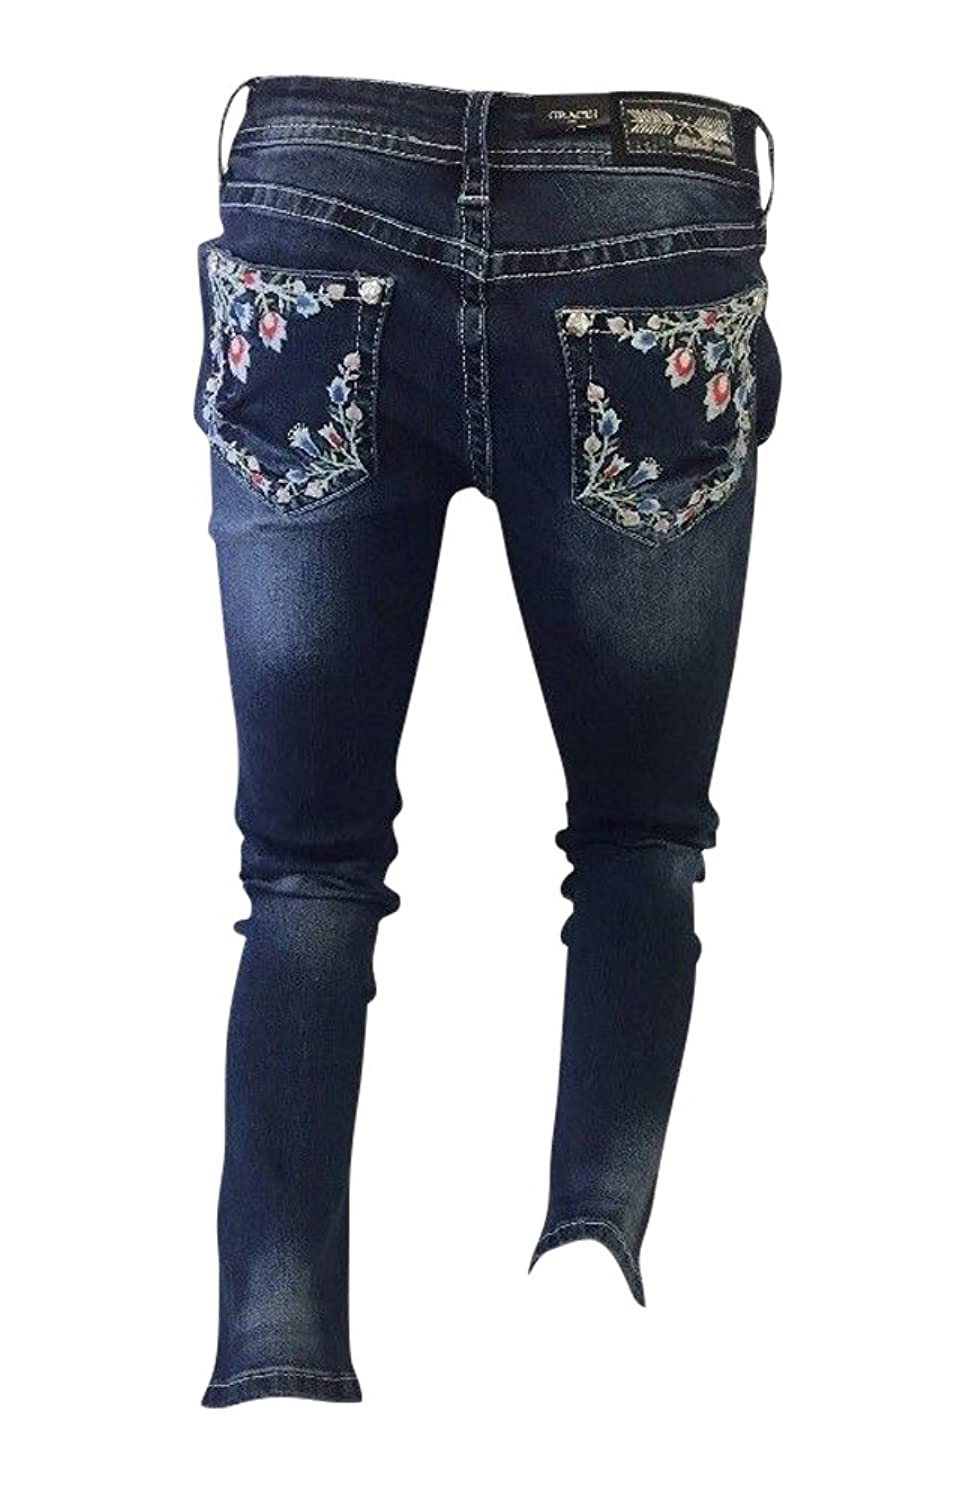 Flash Apparel Women's Grace In LA Jeans Blue Denim colorful Stitching With Floral Design Skinny Leg JNW81133-30